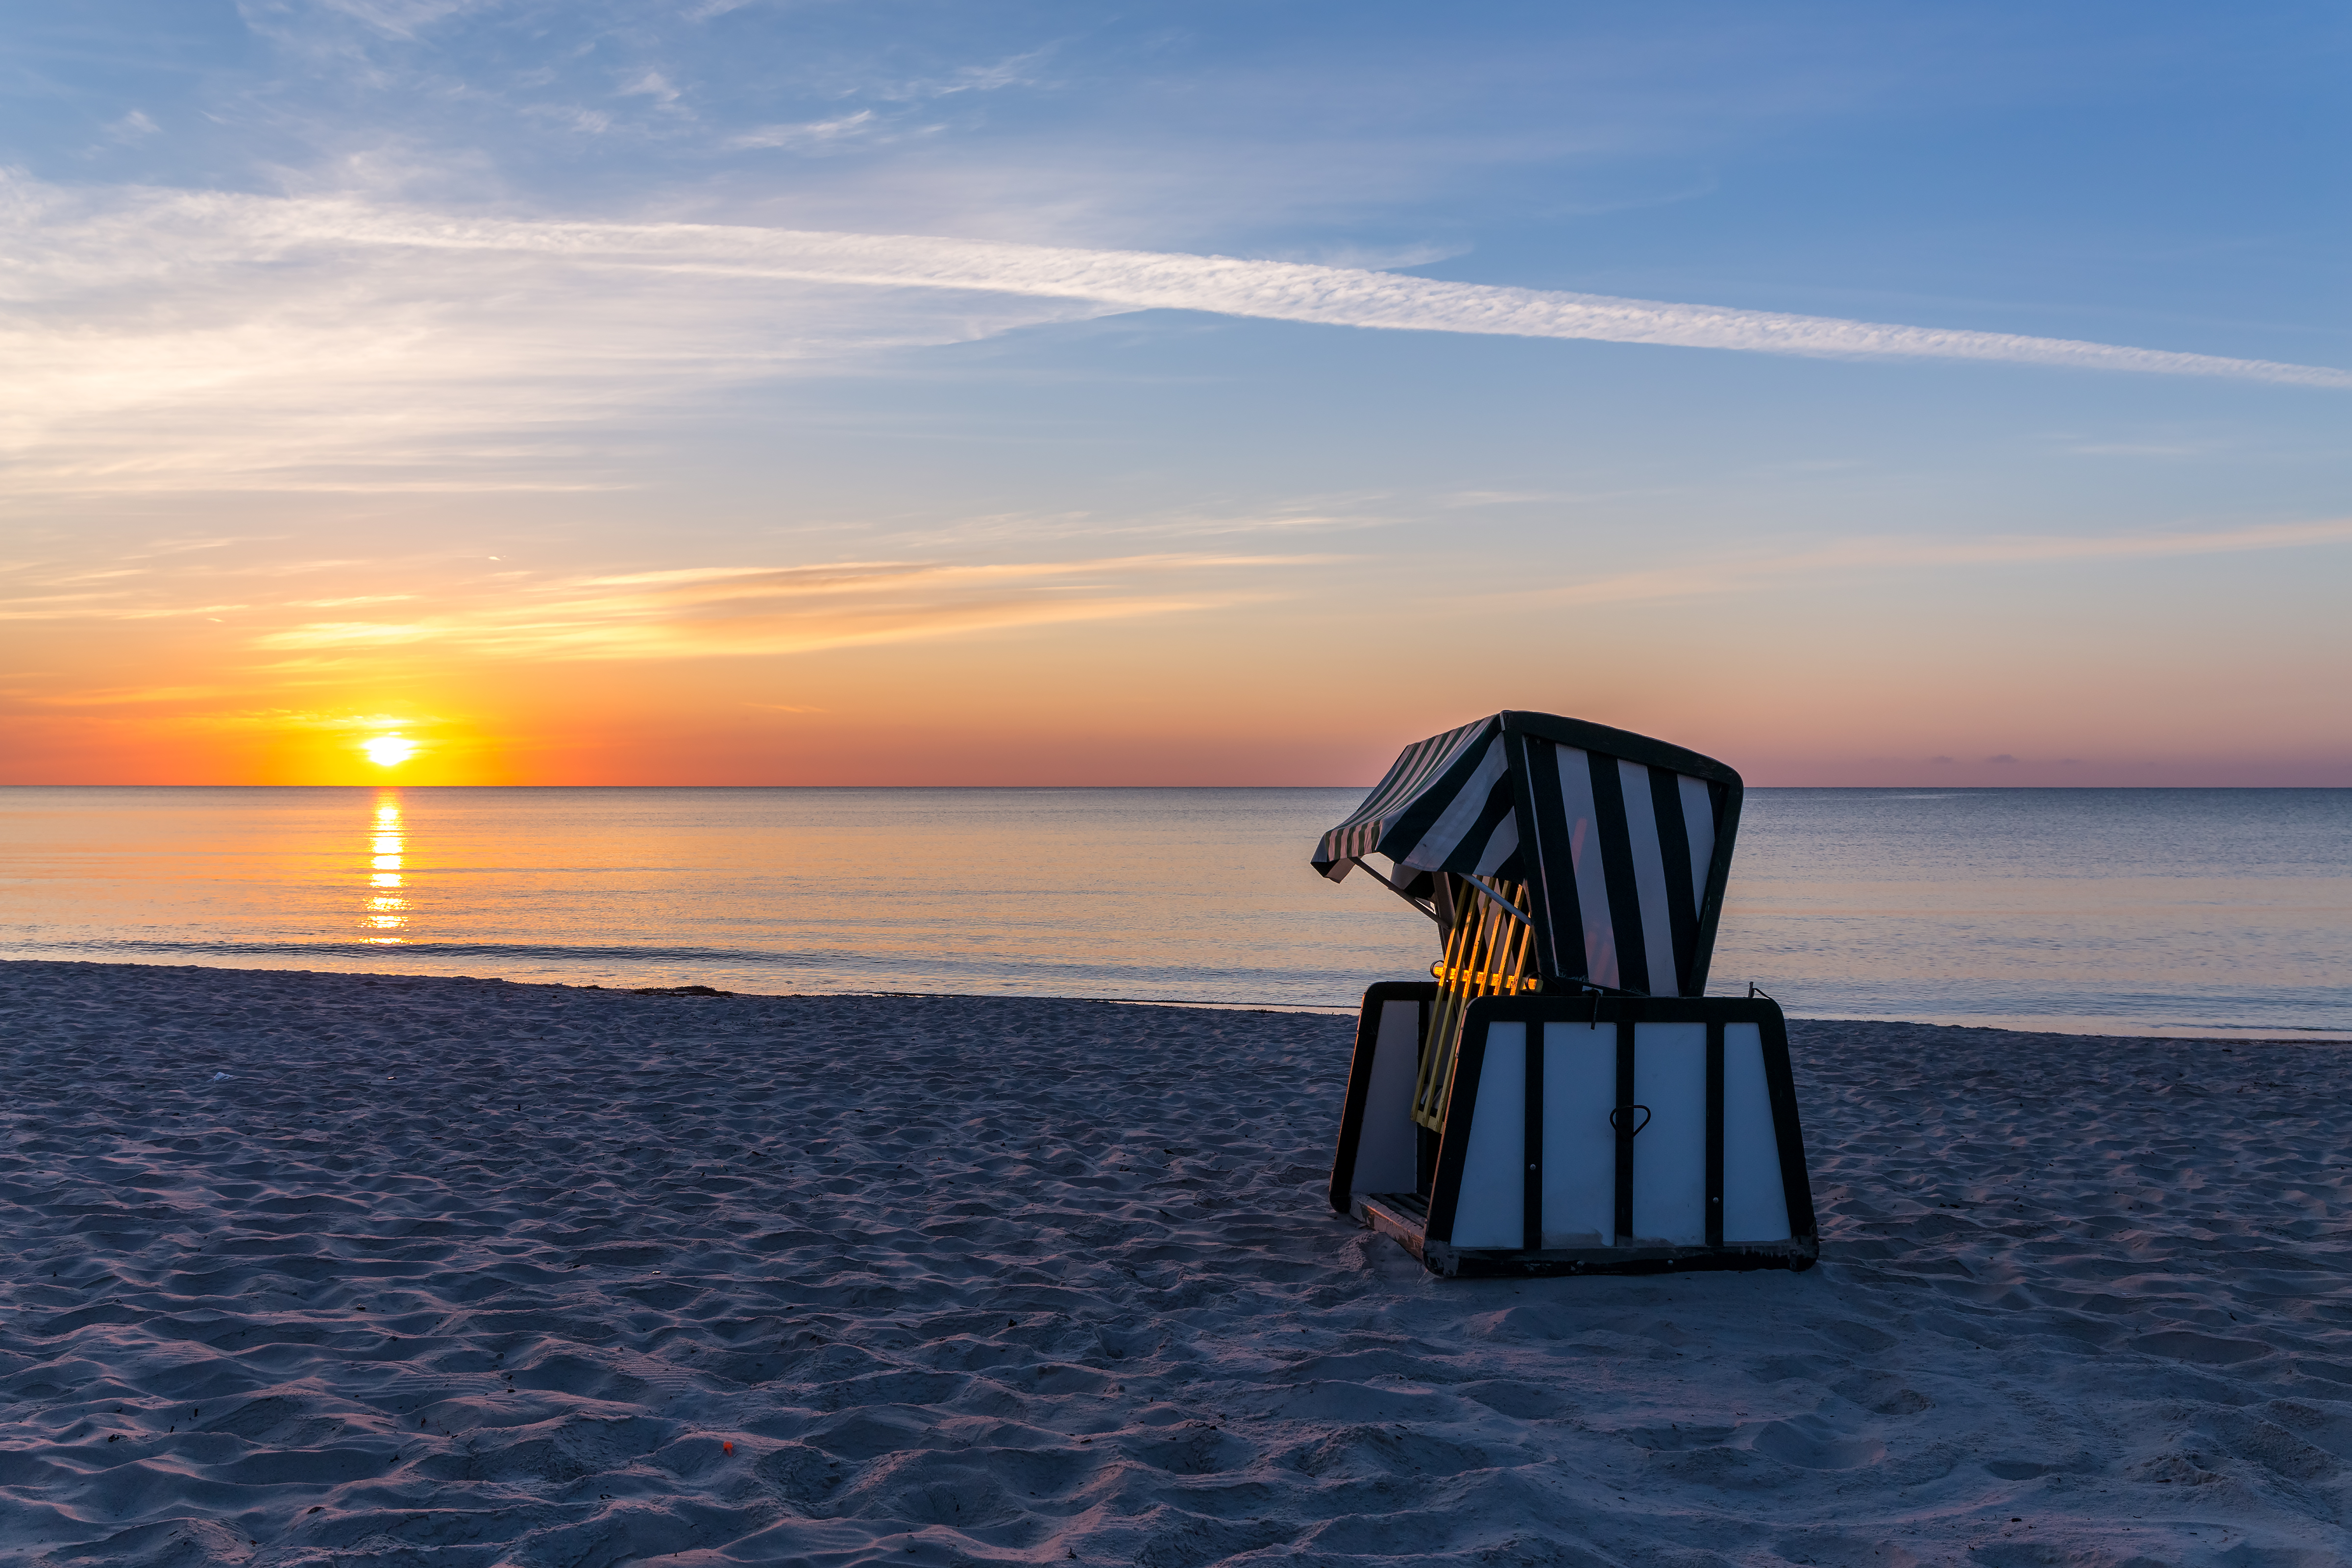 file strandkorb am strand von juliusruh bei sonnenaufgang 150617 wikimedia commons. Black Bedroom Furniture Sets. Home Design Ideas